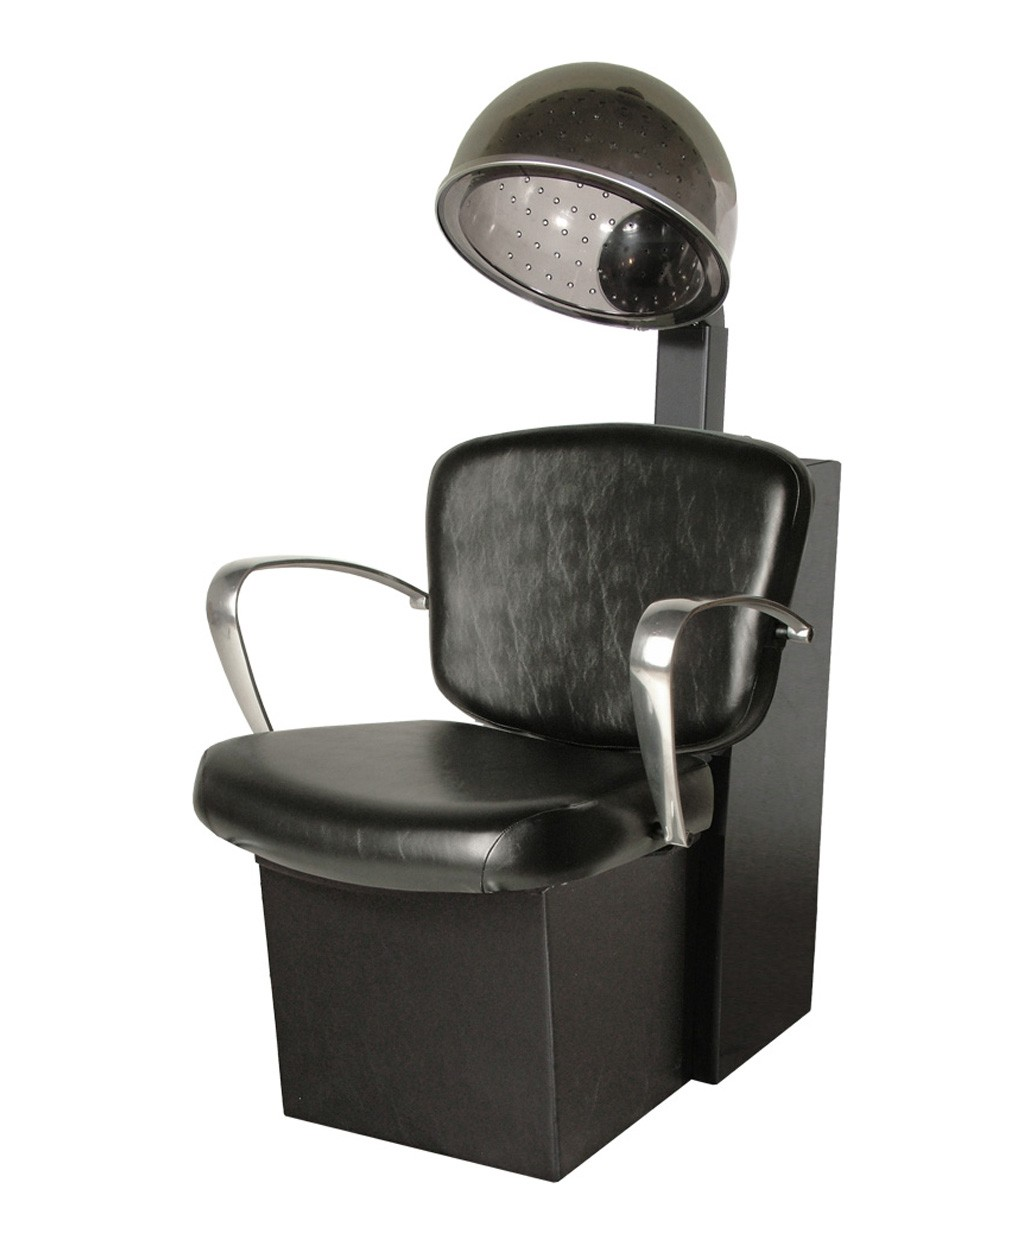 Collins 8320 Milano Dryer Chair